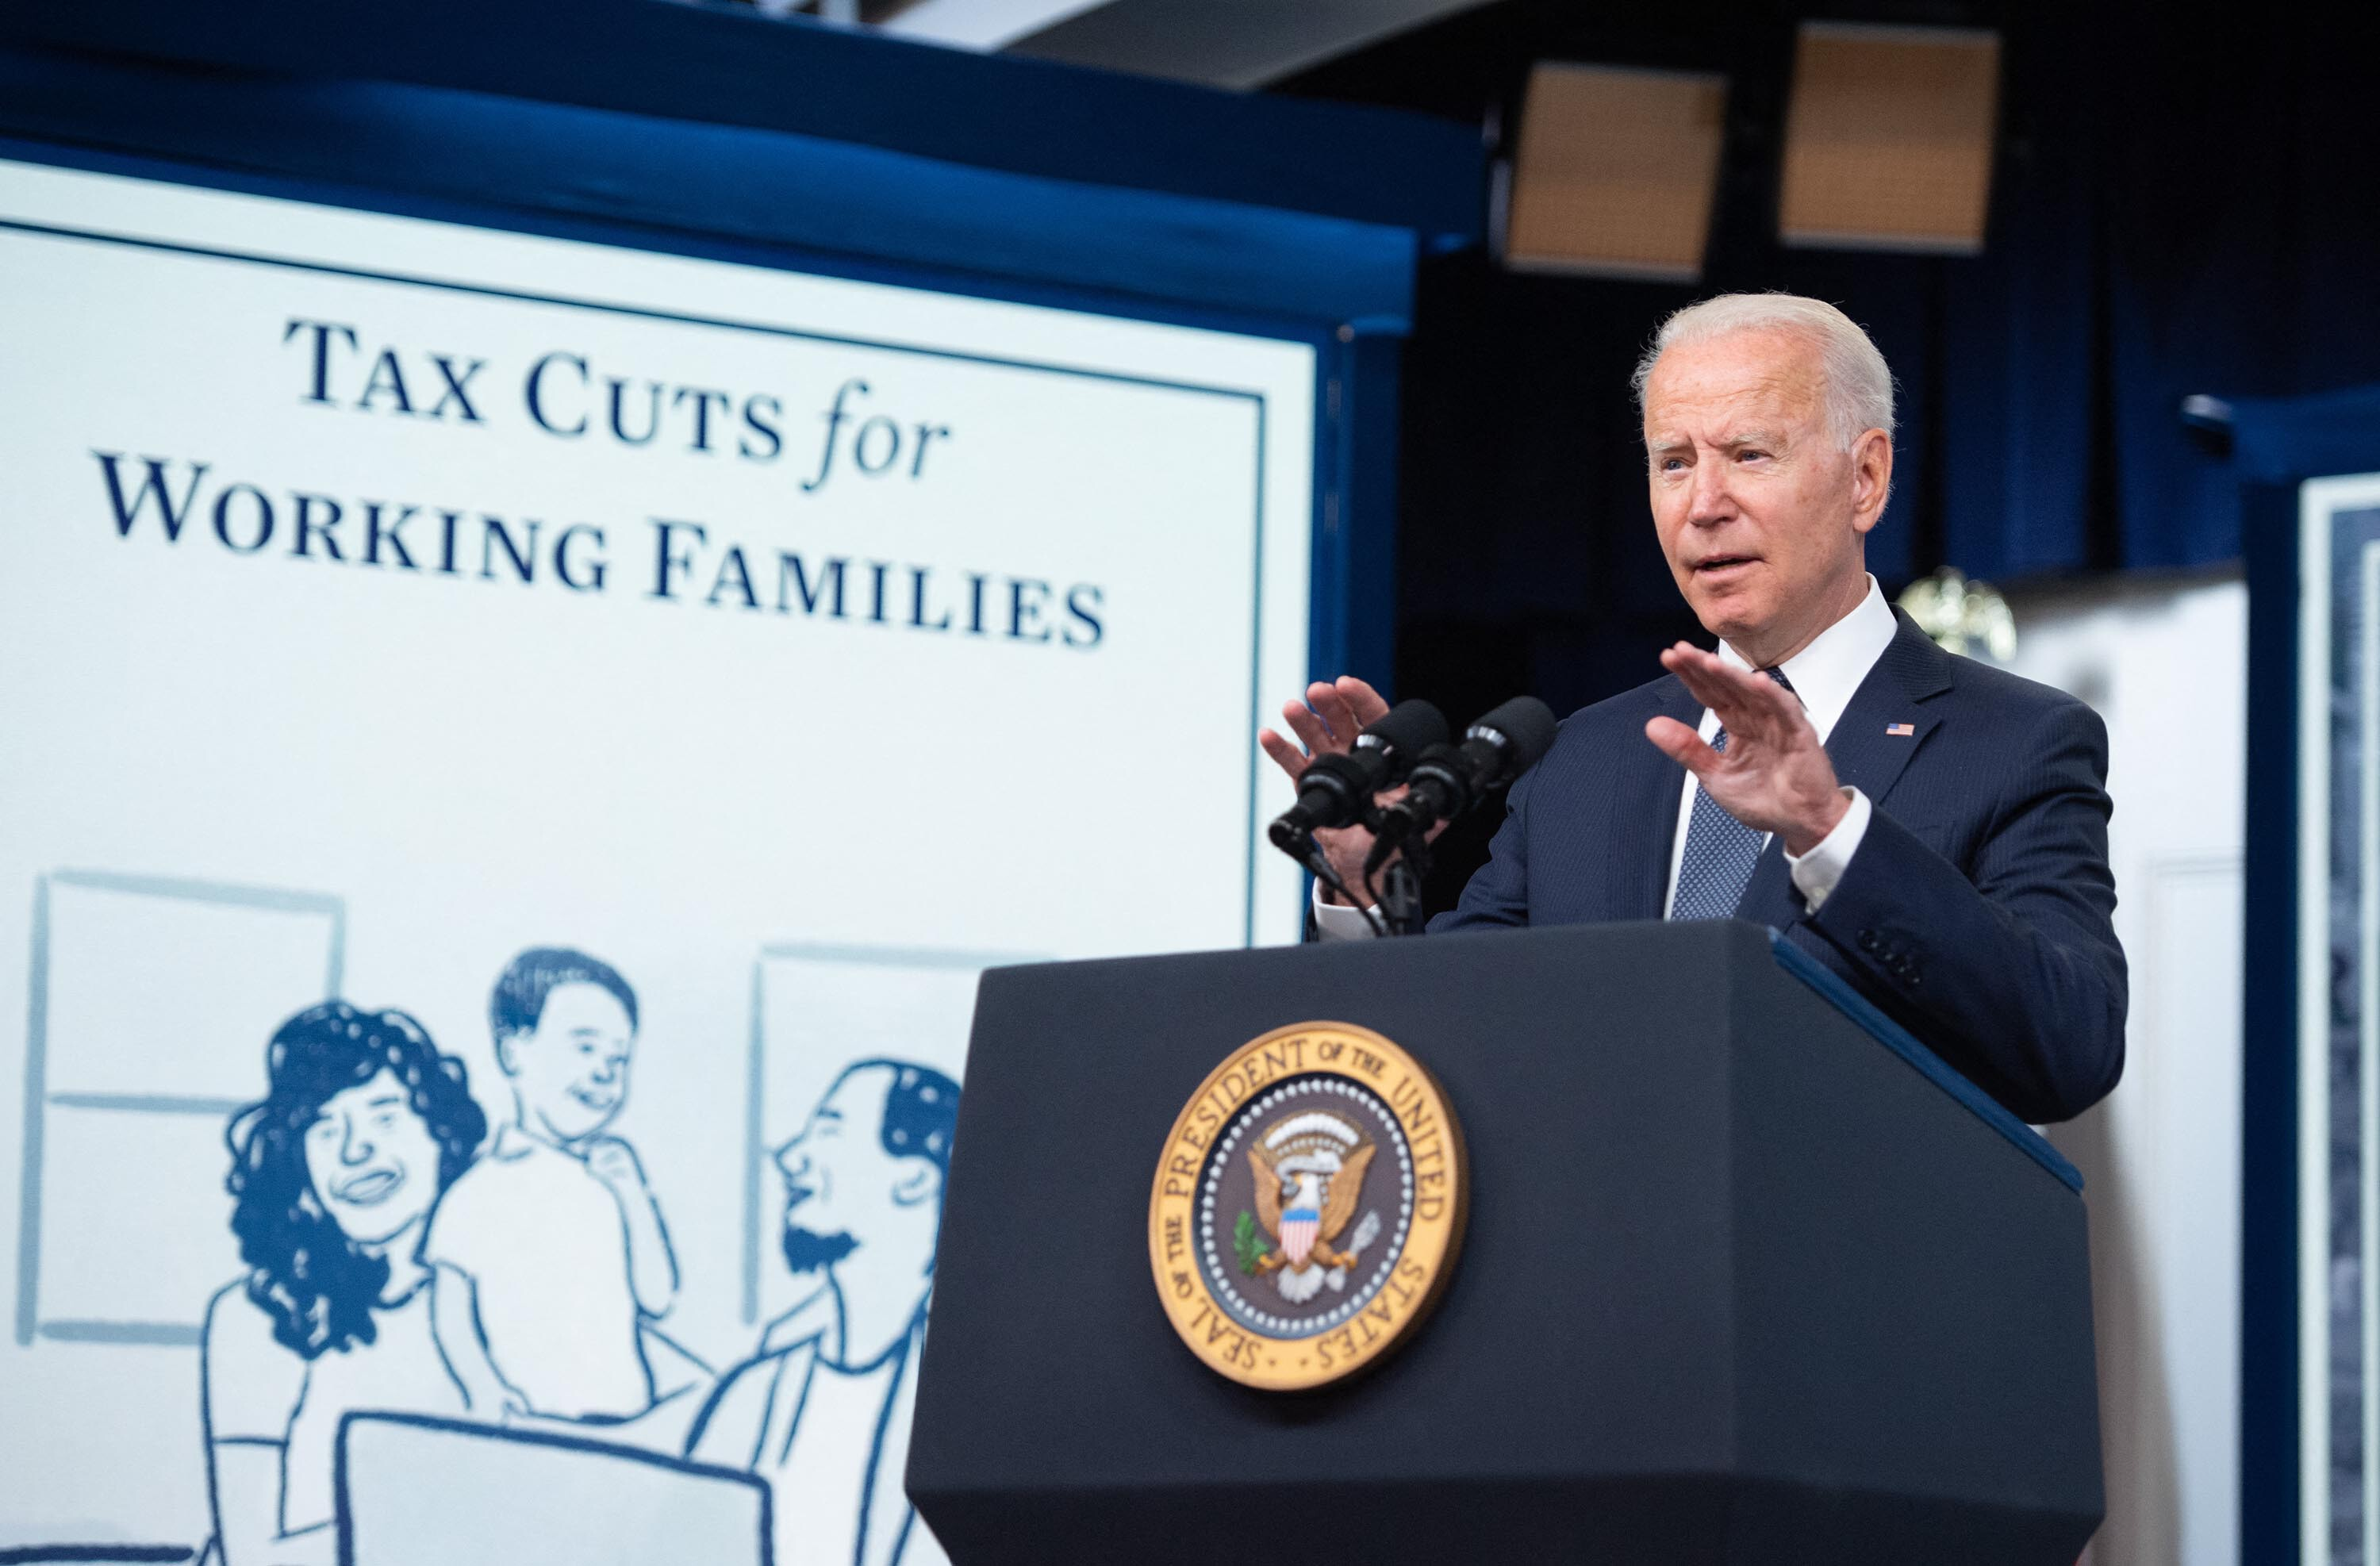 Biden says Cuba is a 'failed state' and calls communism 'a universally failed system'